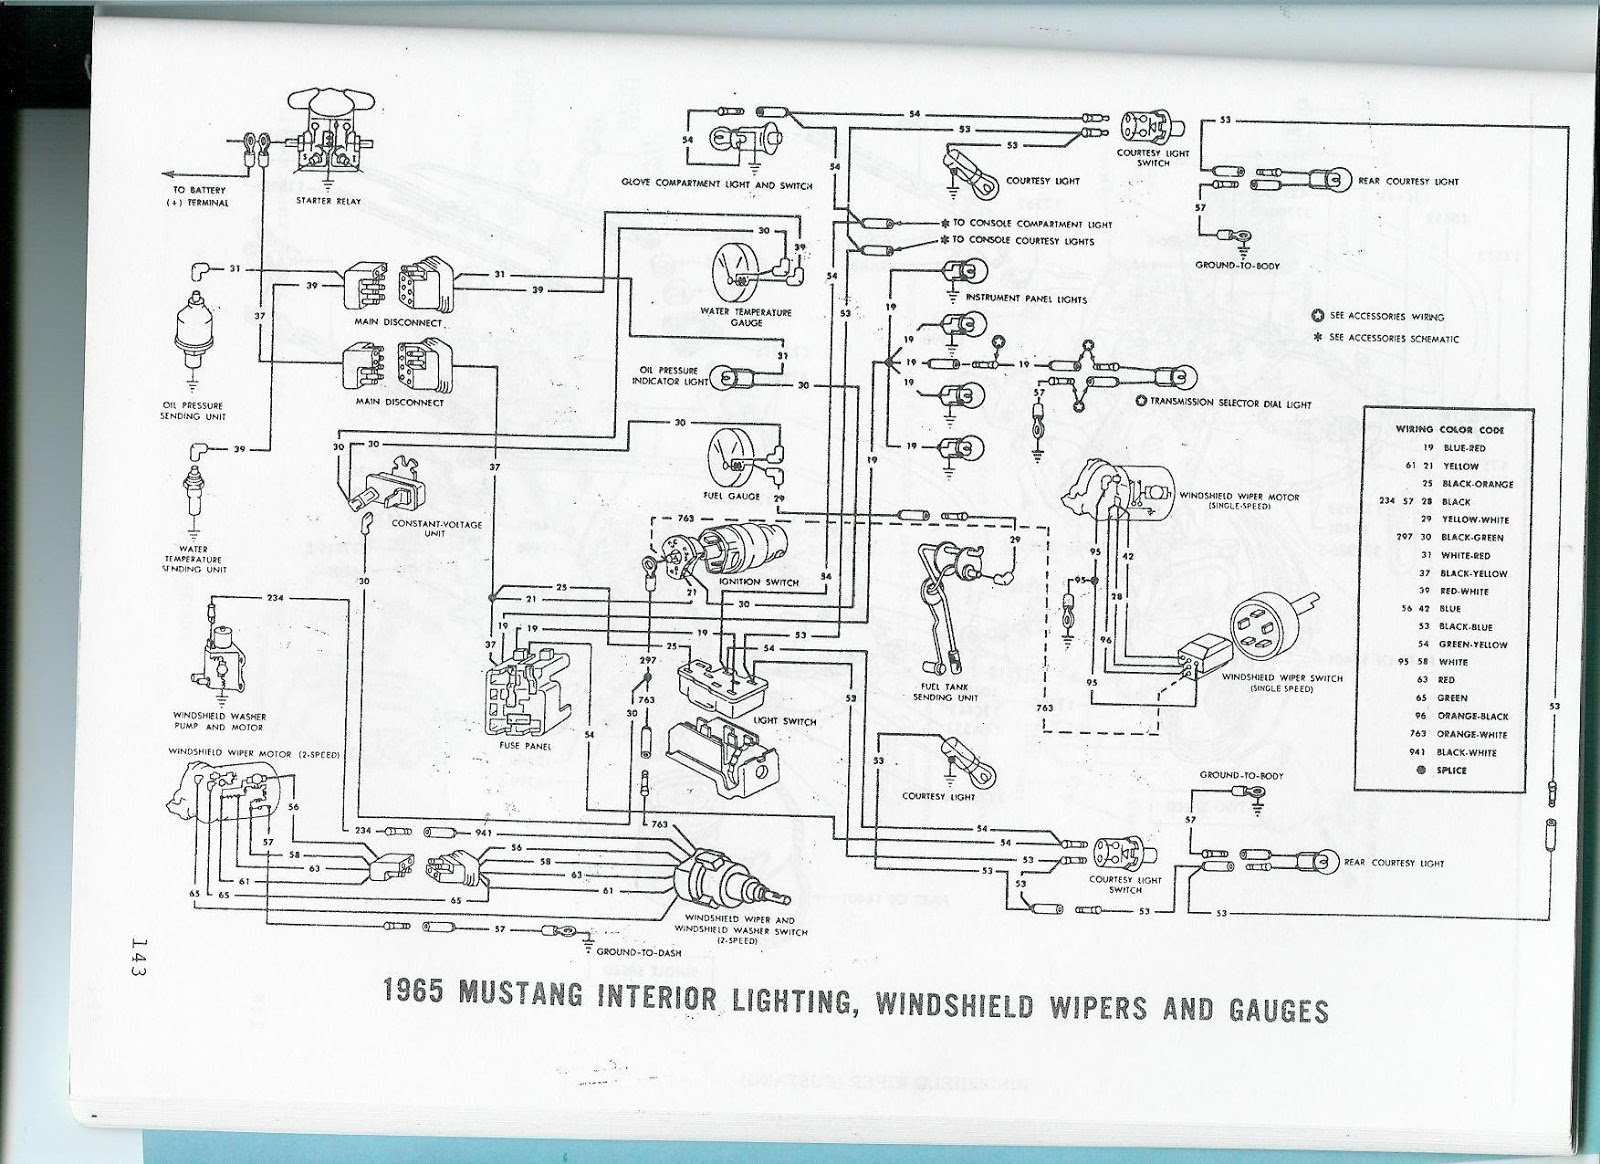 WRG-9303] 1981 Ford Mustang Wiring Diagram on 2005 mustang wiring diagram, 1964 mustang wiring diagram, 1967 charger wiring diagram, 1968 mustang wiring diagram, 1973 charger wiring diagram, 2002 mustang wiring diagram, 2007 mustang wiring diagram, 1999 mustang wiring diagram, 1967 mustang wiring diagram, 1981 mustang brochure, 1977 mustang wiring diagram, 1980 mustang wiring diagram, 2003 mustang wiring diagram, 1975 ford mustang ii wiring diagram, 1965 mustang wiring diagram, 1970 mustang wiring diagram, 1973 mustang mach 1 wiring diagram, 1966 mustang wiring diagram, 1993 mustang wiring diagram, 1998 mustang wiring diagram,